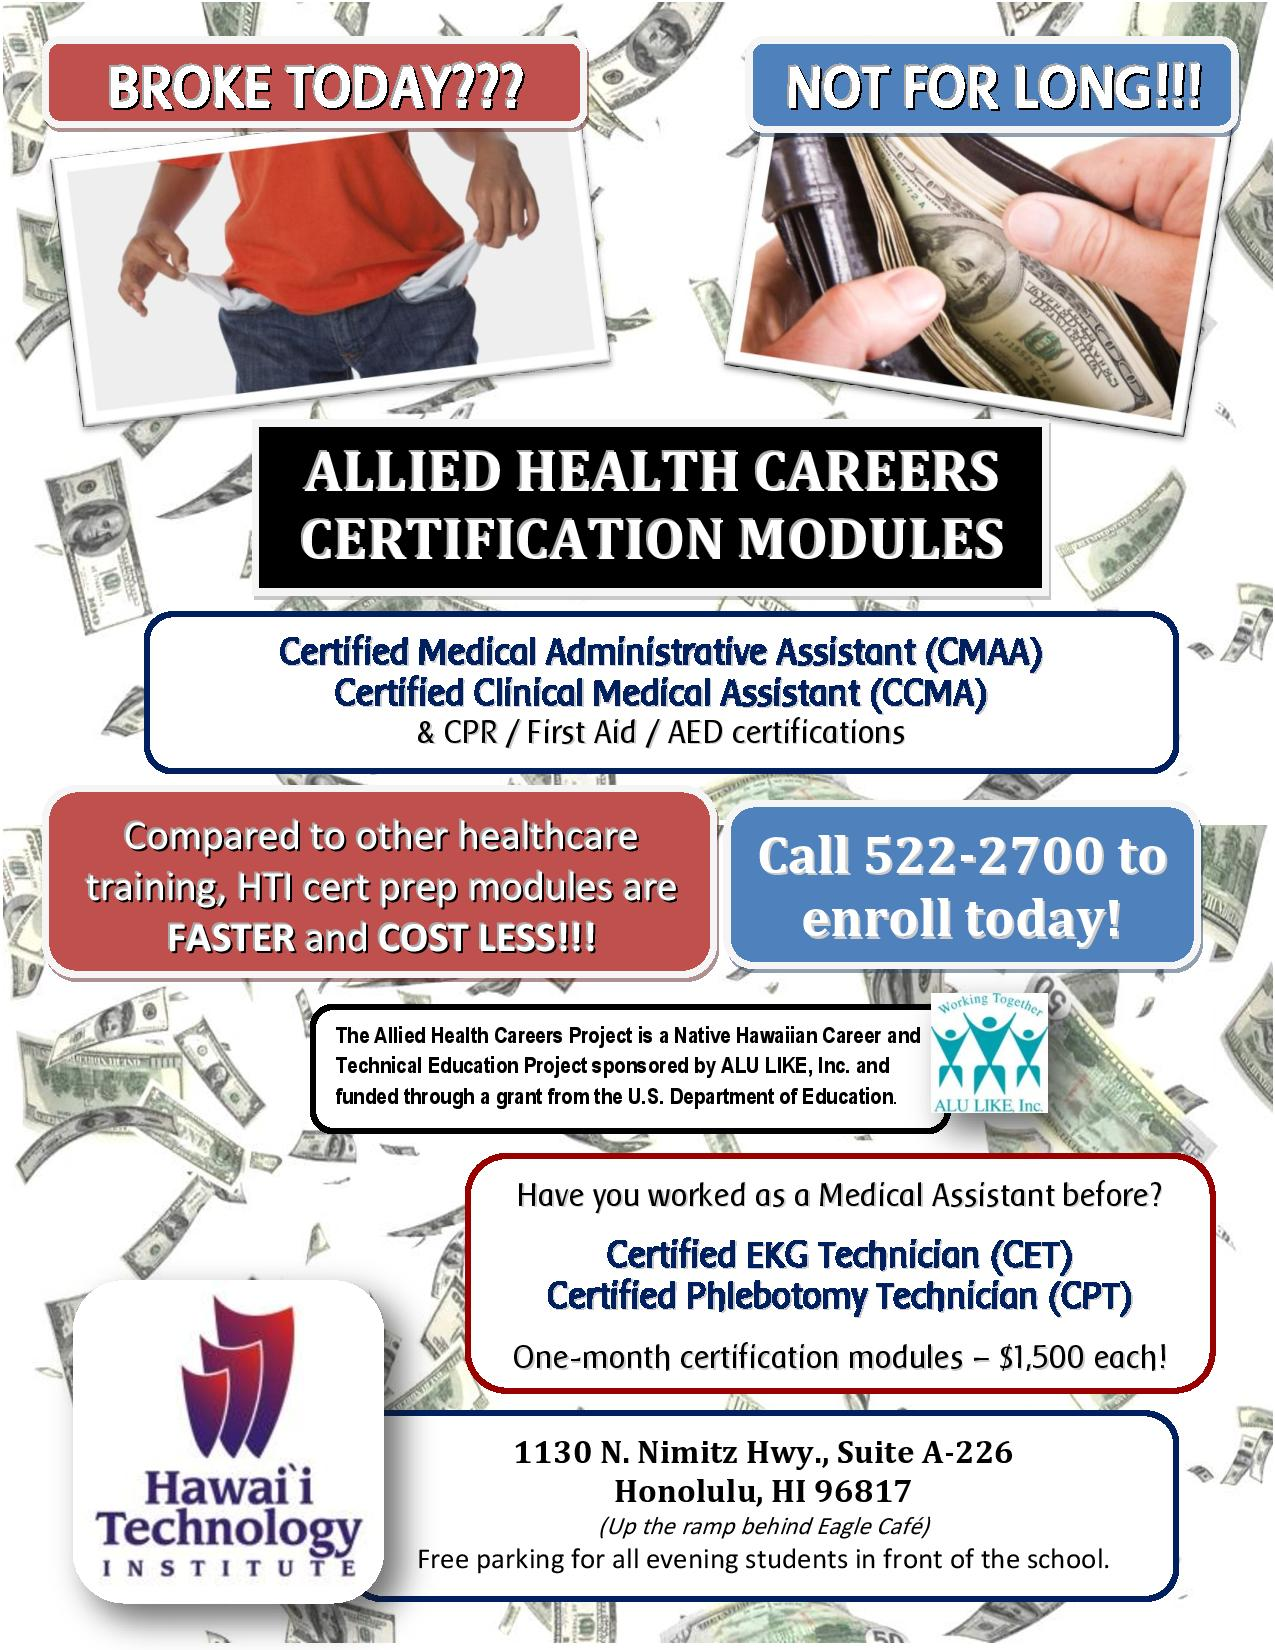 Hawaii technology intitute affordable certified medical recruitment flyer dec2015 xflitez Choice Image